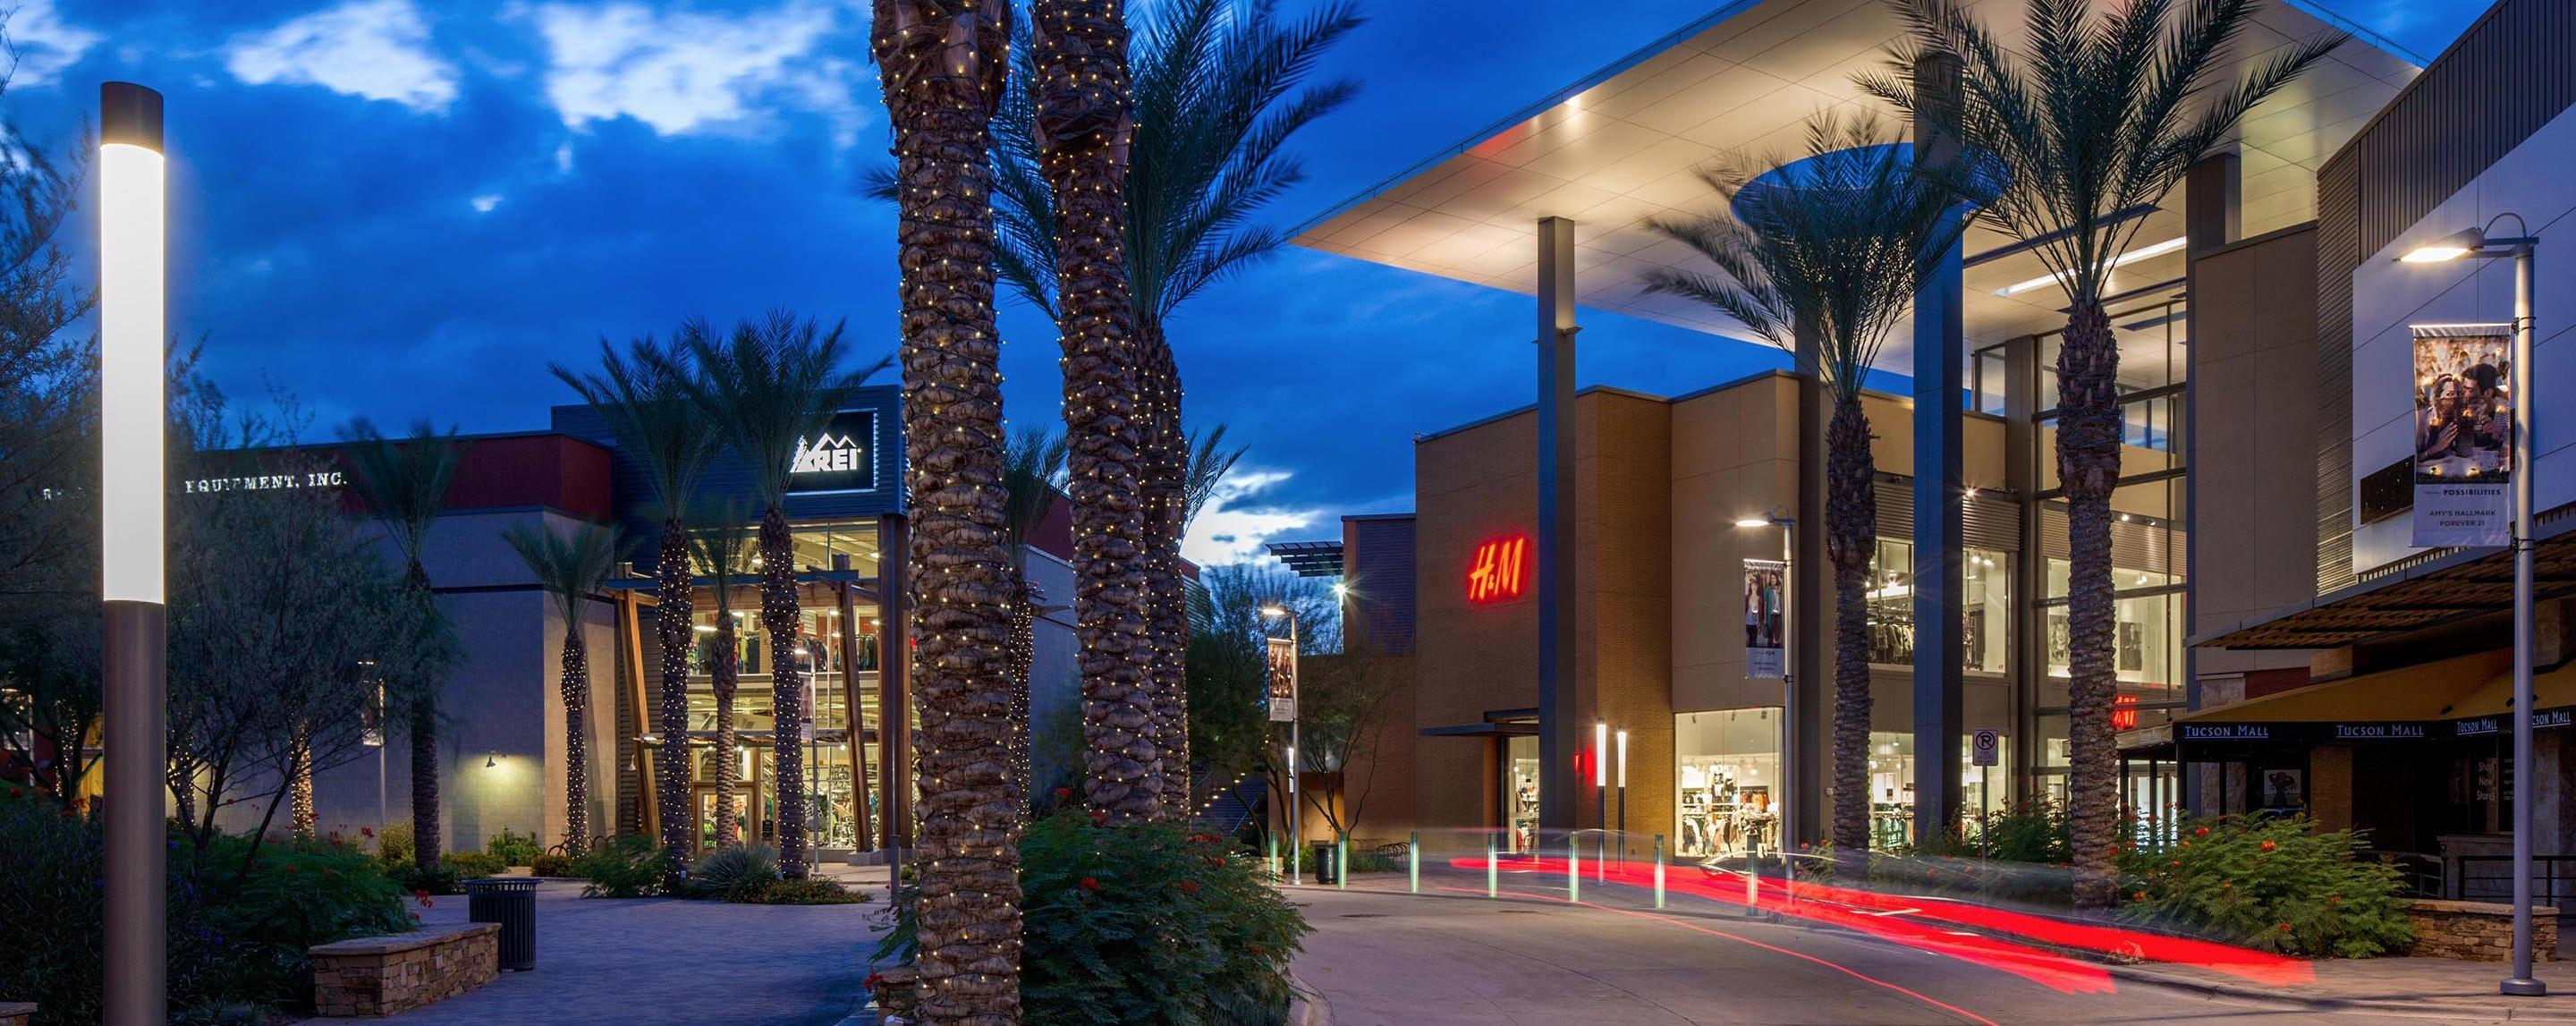 Clothing Stores In Tucson Mall